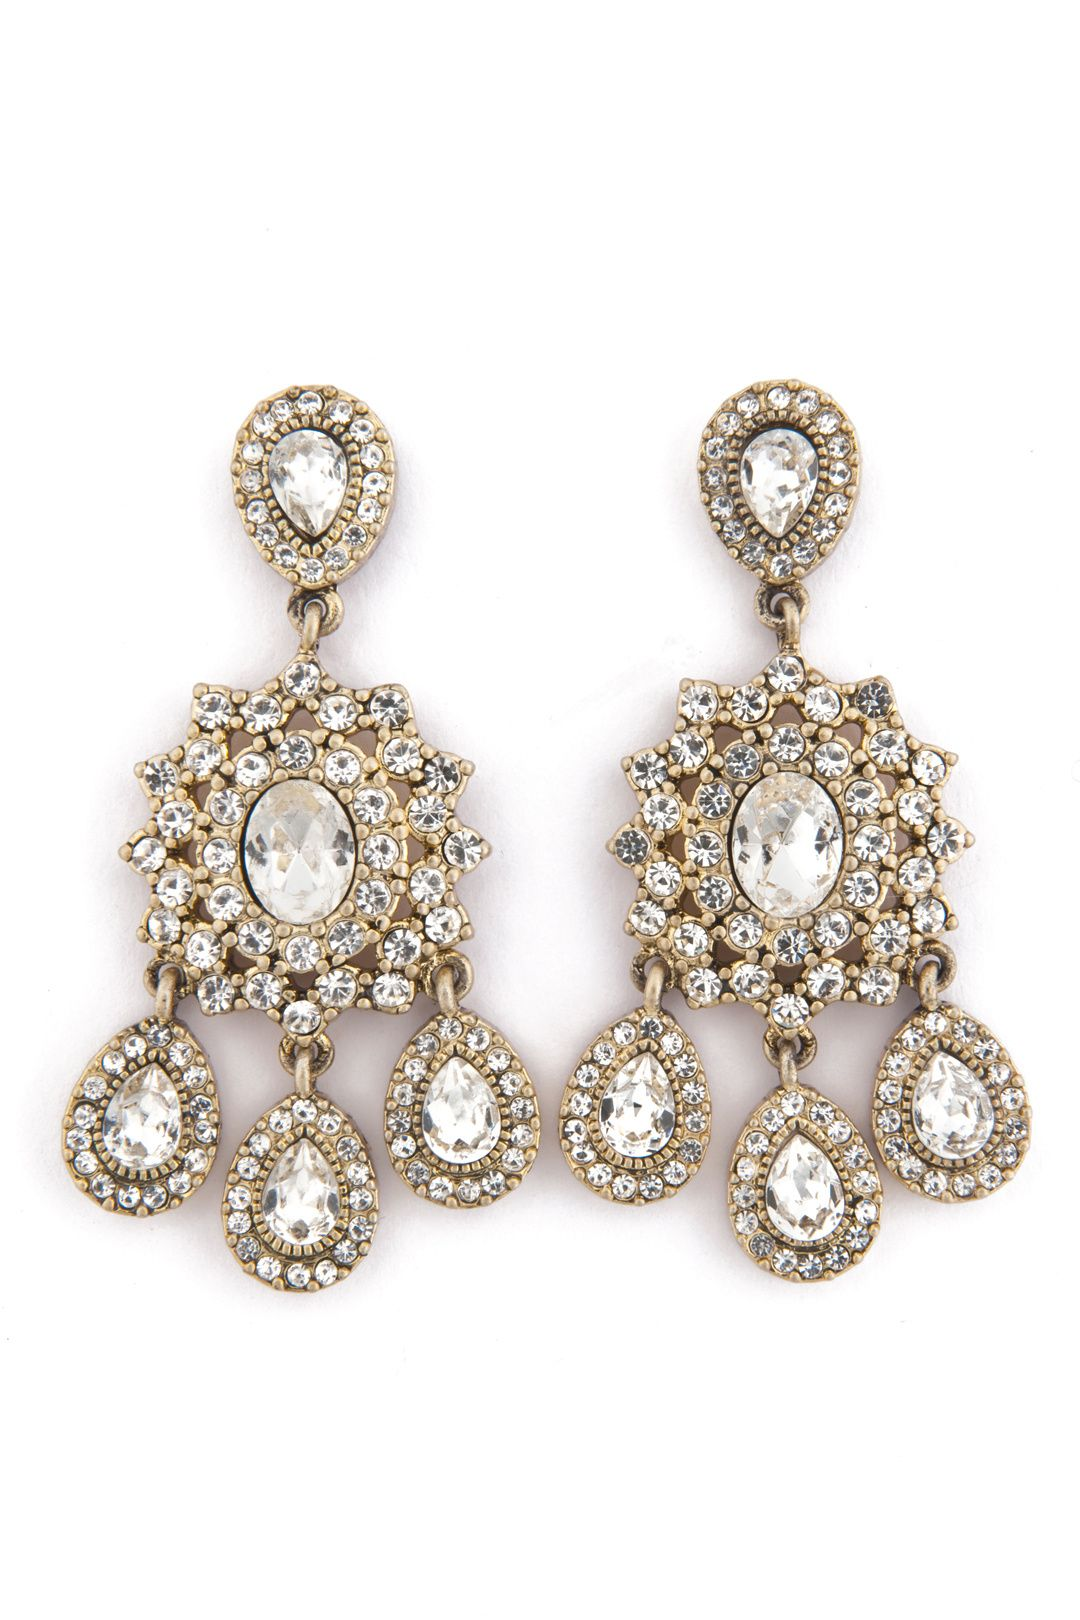 Southern Plantation Earrings By Nicole Miller Accessories For 5 Only At The Runway